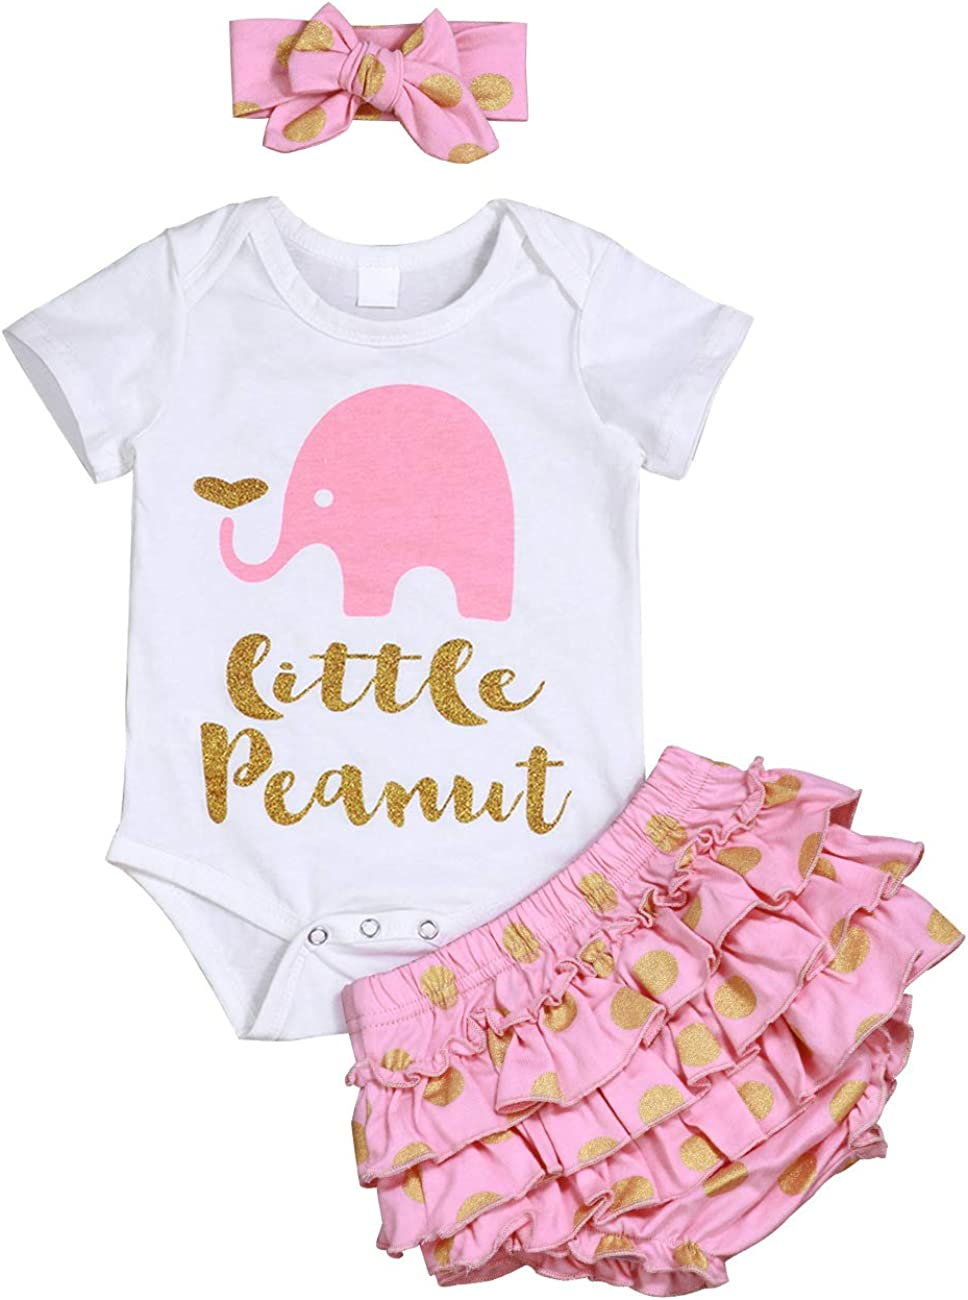 Newborn Baby Girl Summer Clothes Elephant Letters Print Romper + Polka Dots Shorts with Headband 3Pcs Outfit Set Pink